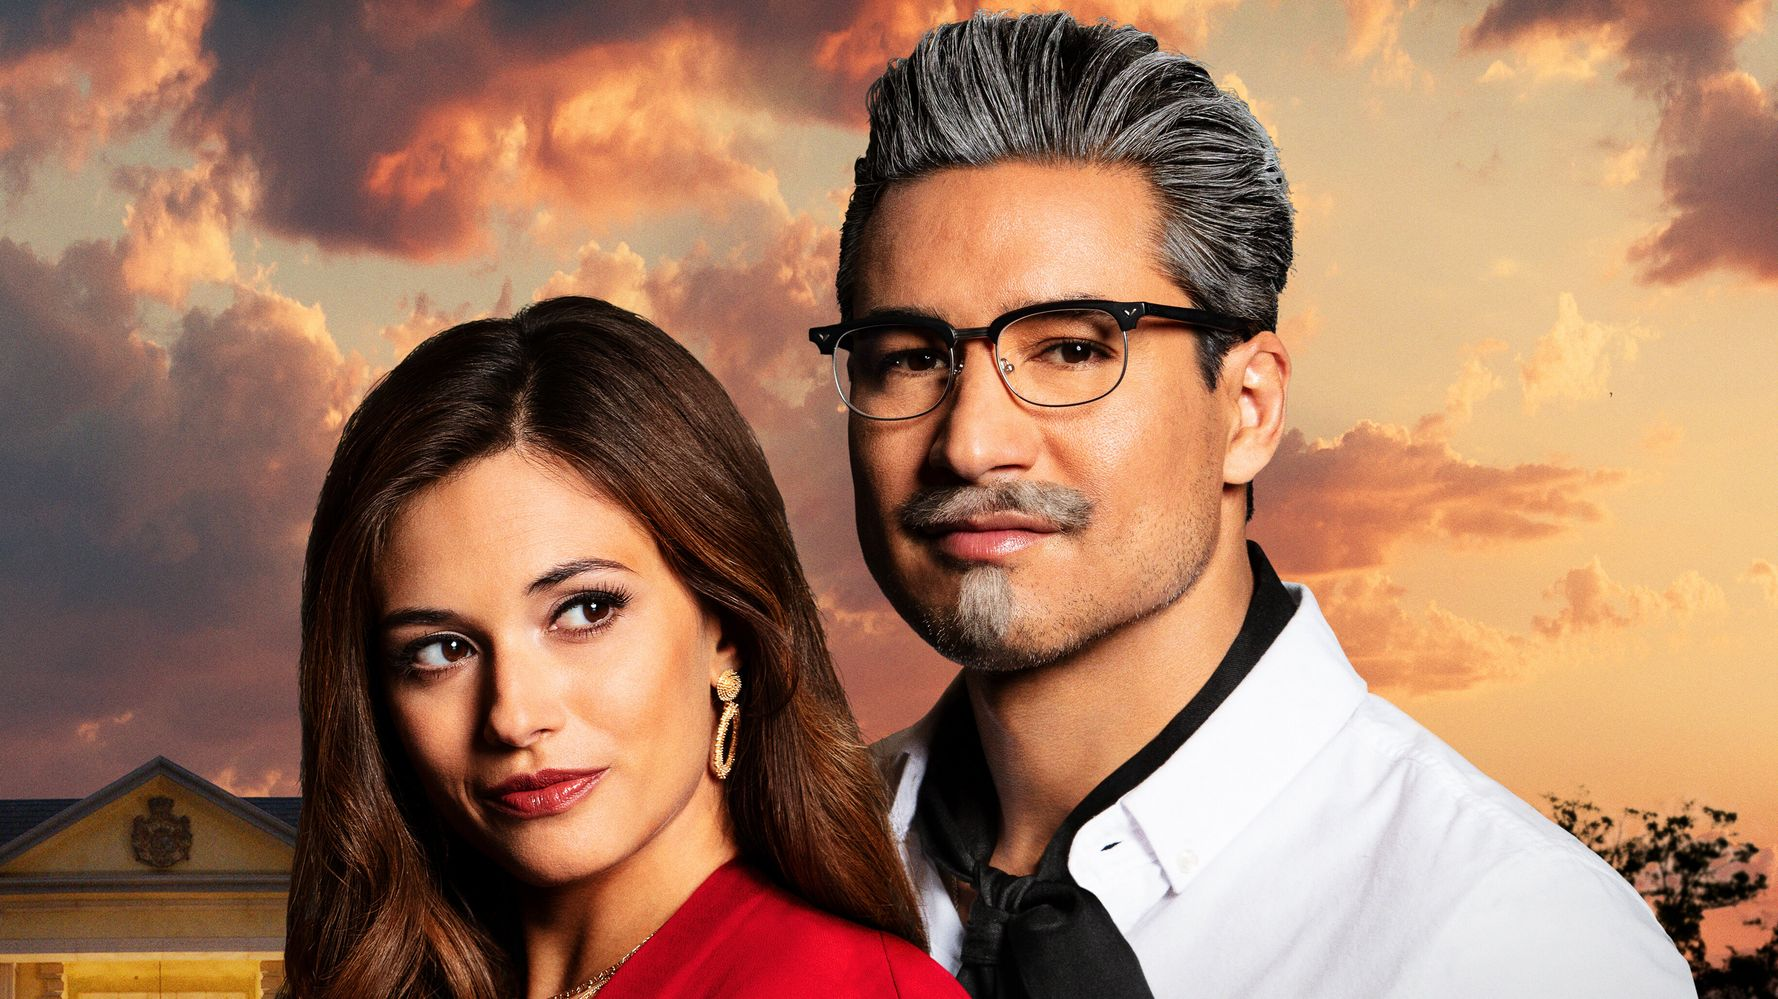 People Have Thoughts On Mario Lopez As Colonel Sanders In 'Horny KFC' Lifetime Movie